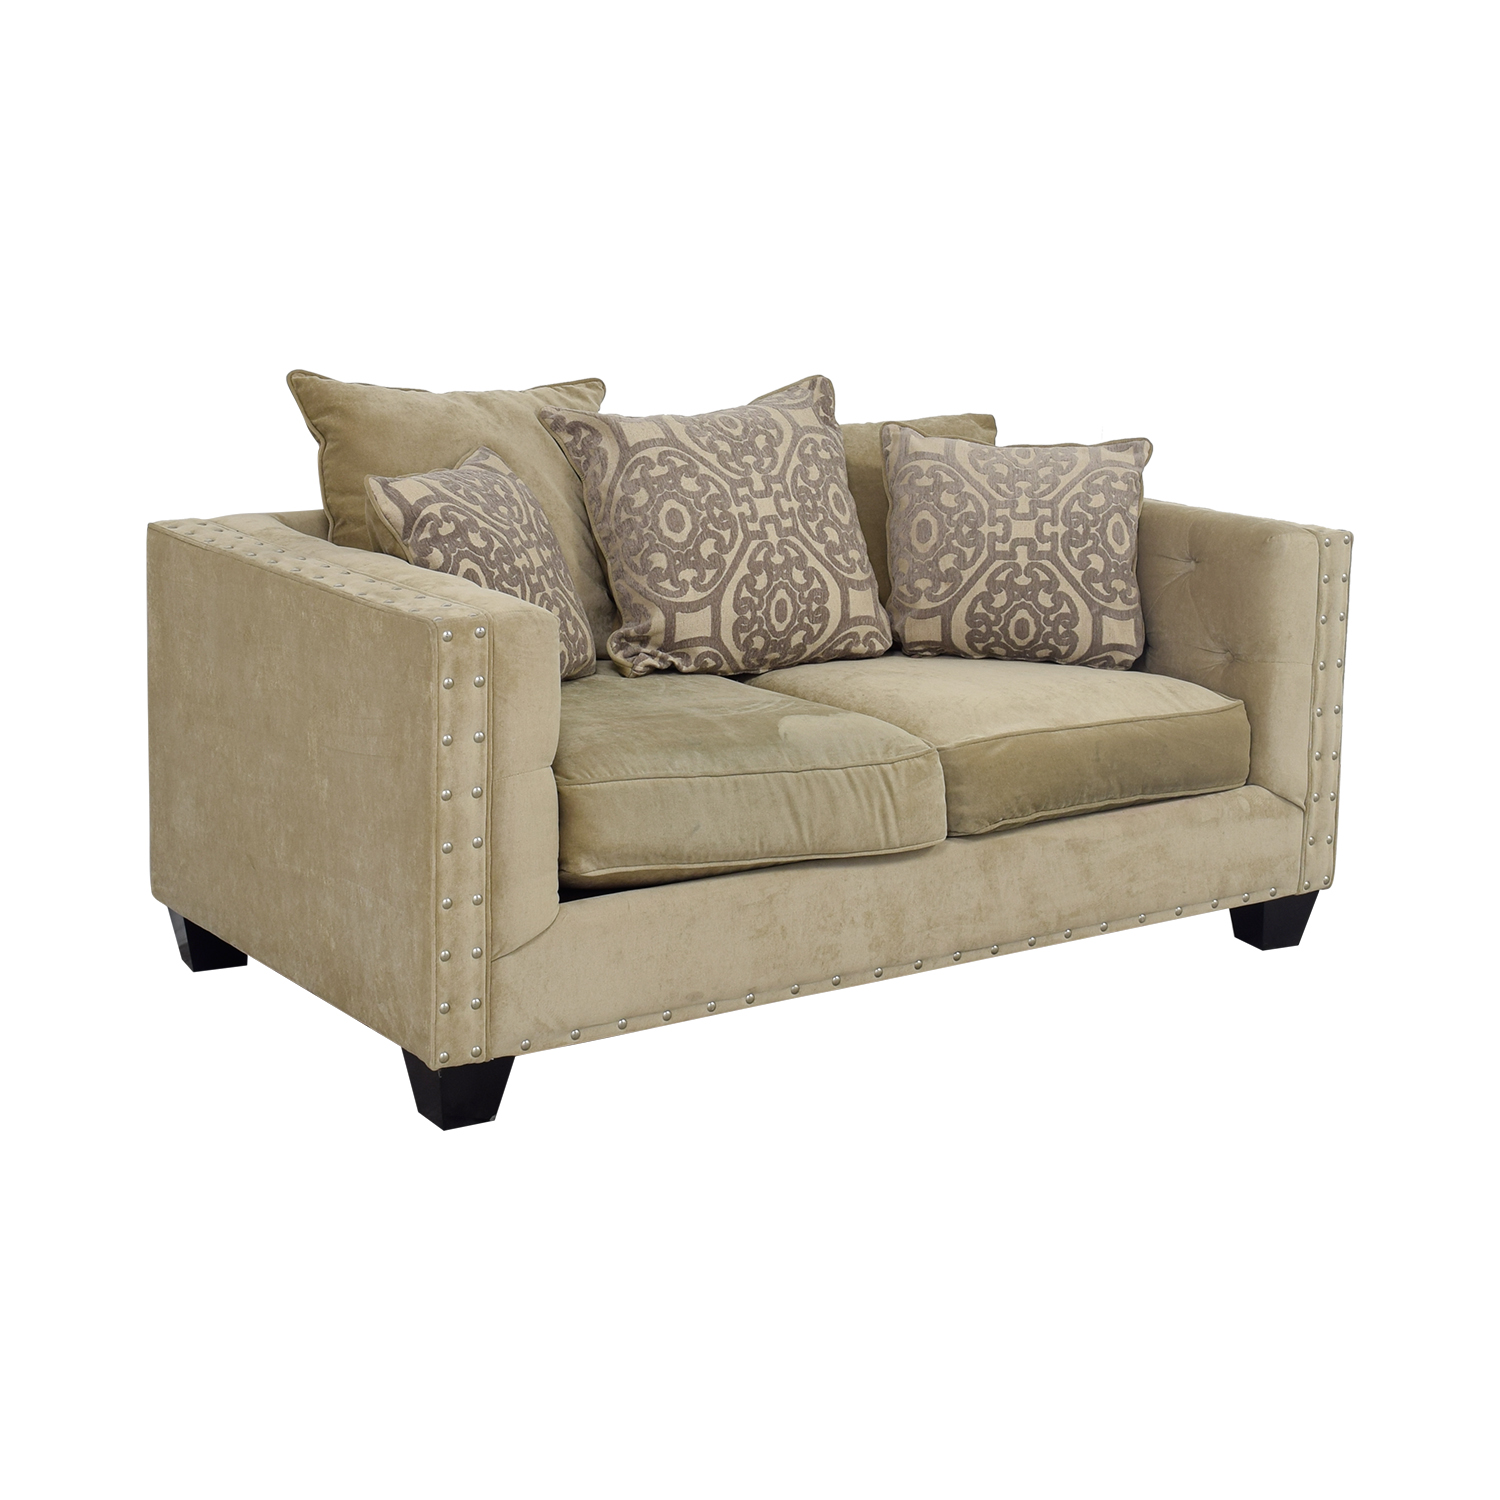 Raymour & Flanigan Raymour & Flanigan Cindy Crawford Beige Suede Loveseat second hand